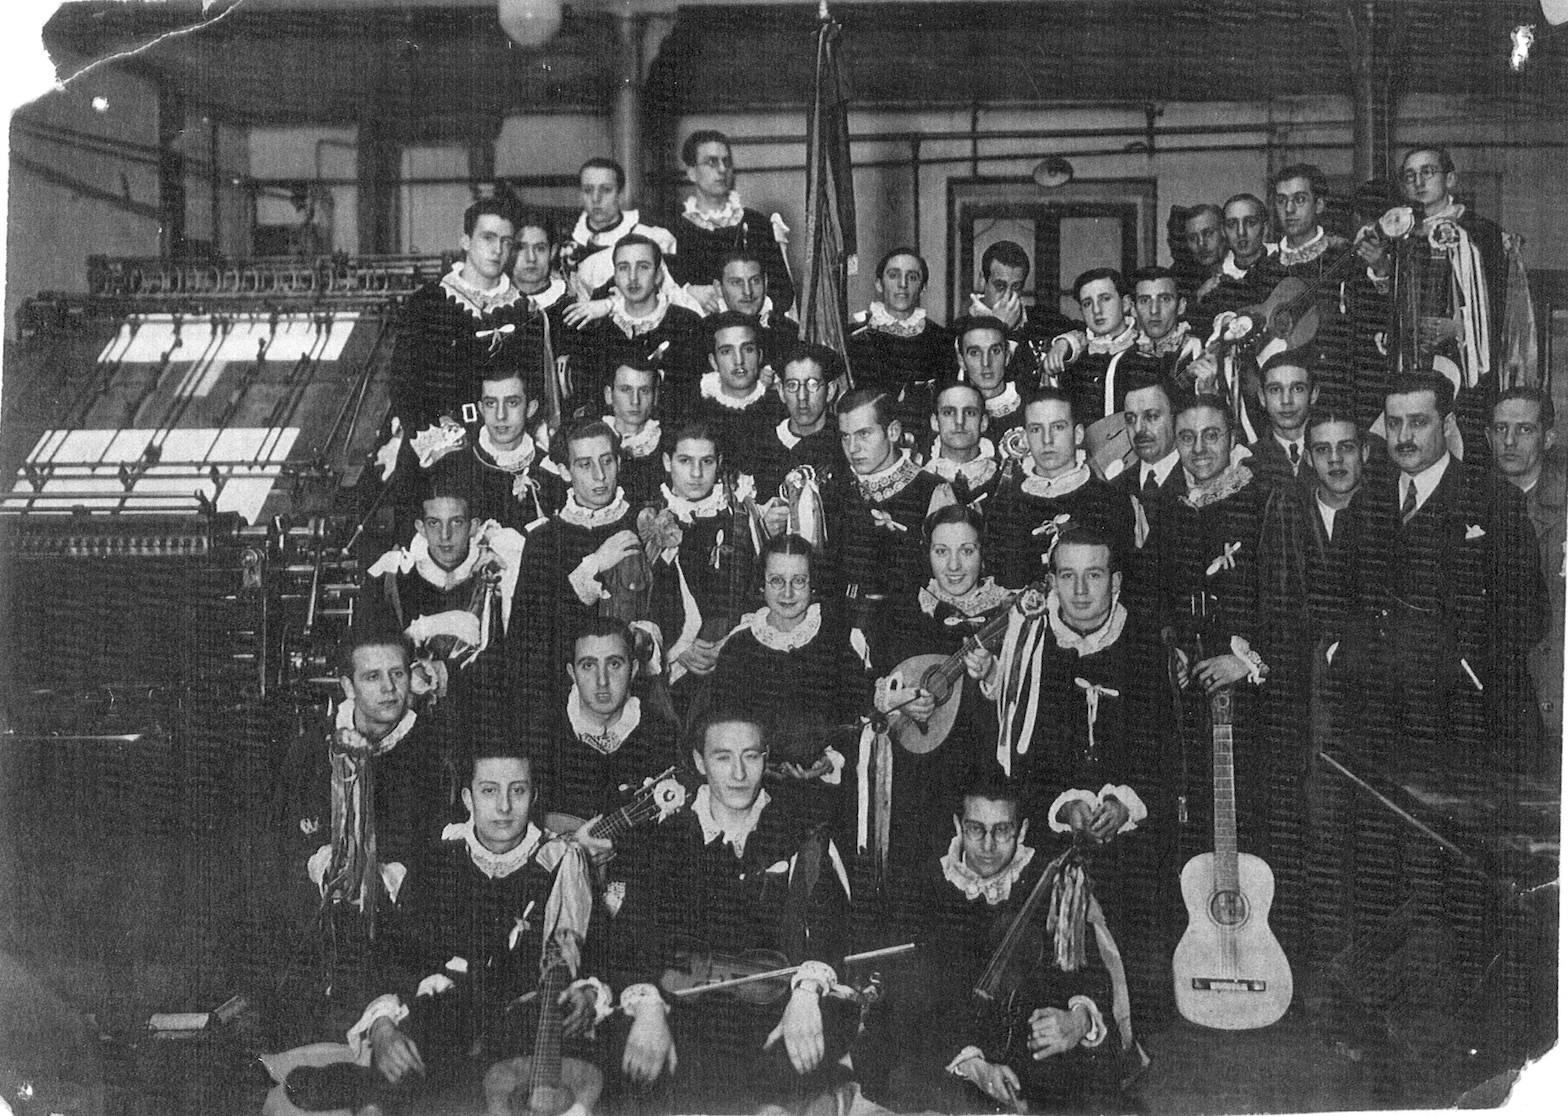 Tuna de la Universidad Central de Madrid 1935